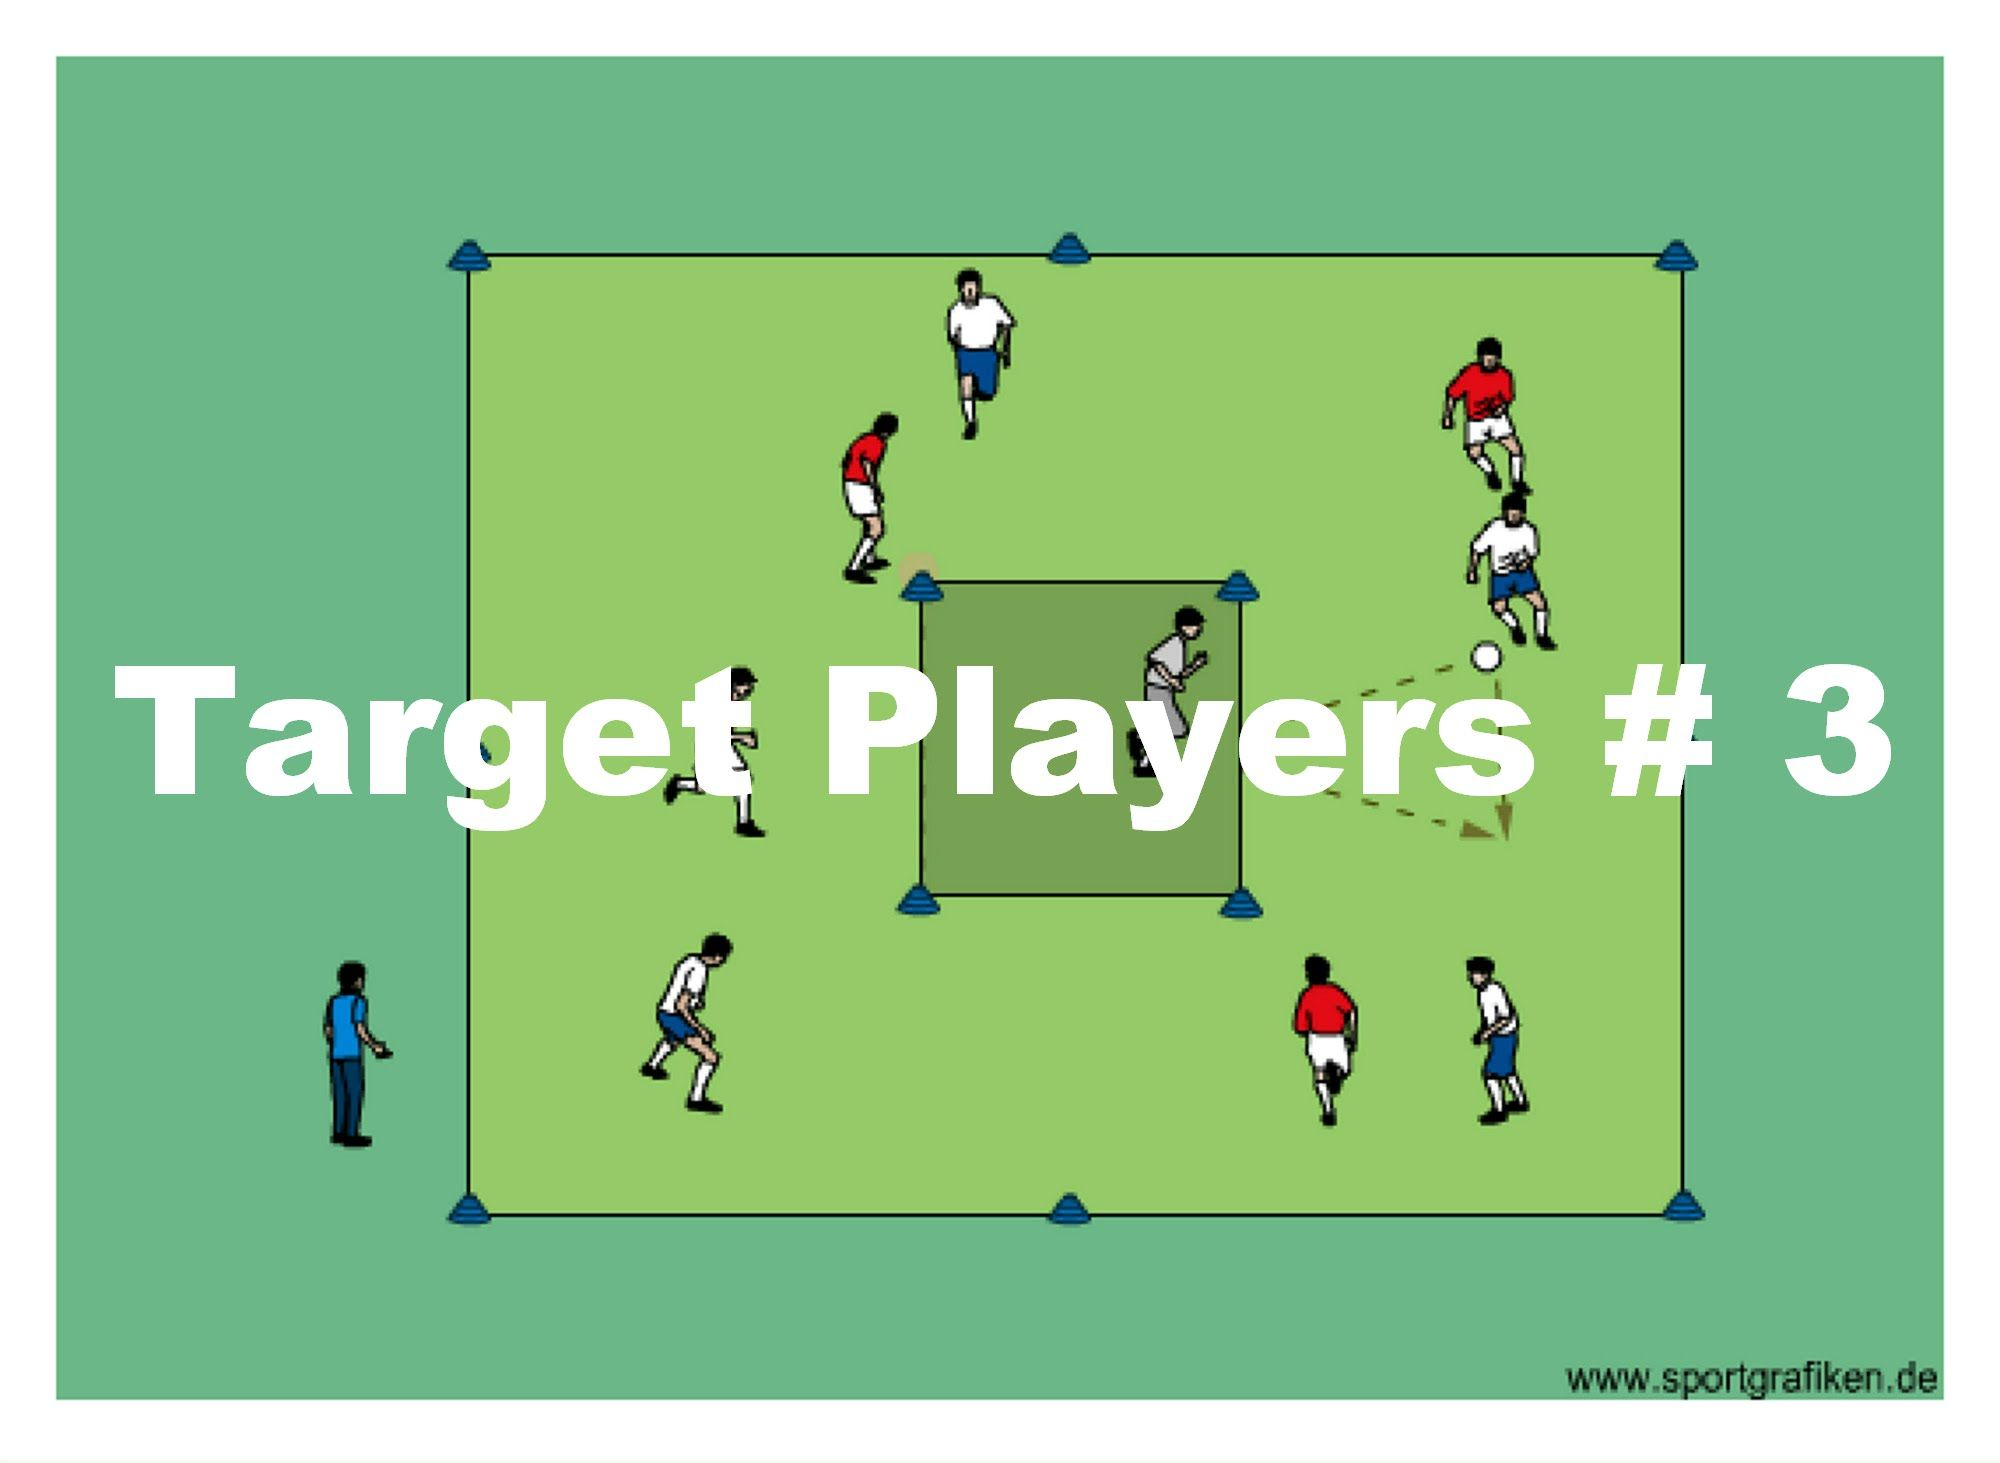 Target Players 3 Discover Our Dynamic Soccer Training Program With A Great Selection Of Passing Drills A Soccer Training Soccer Drills For Kids Soccer Drills